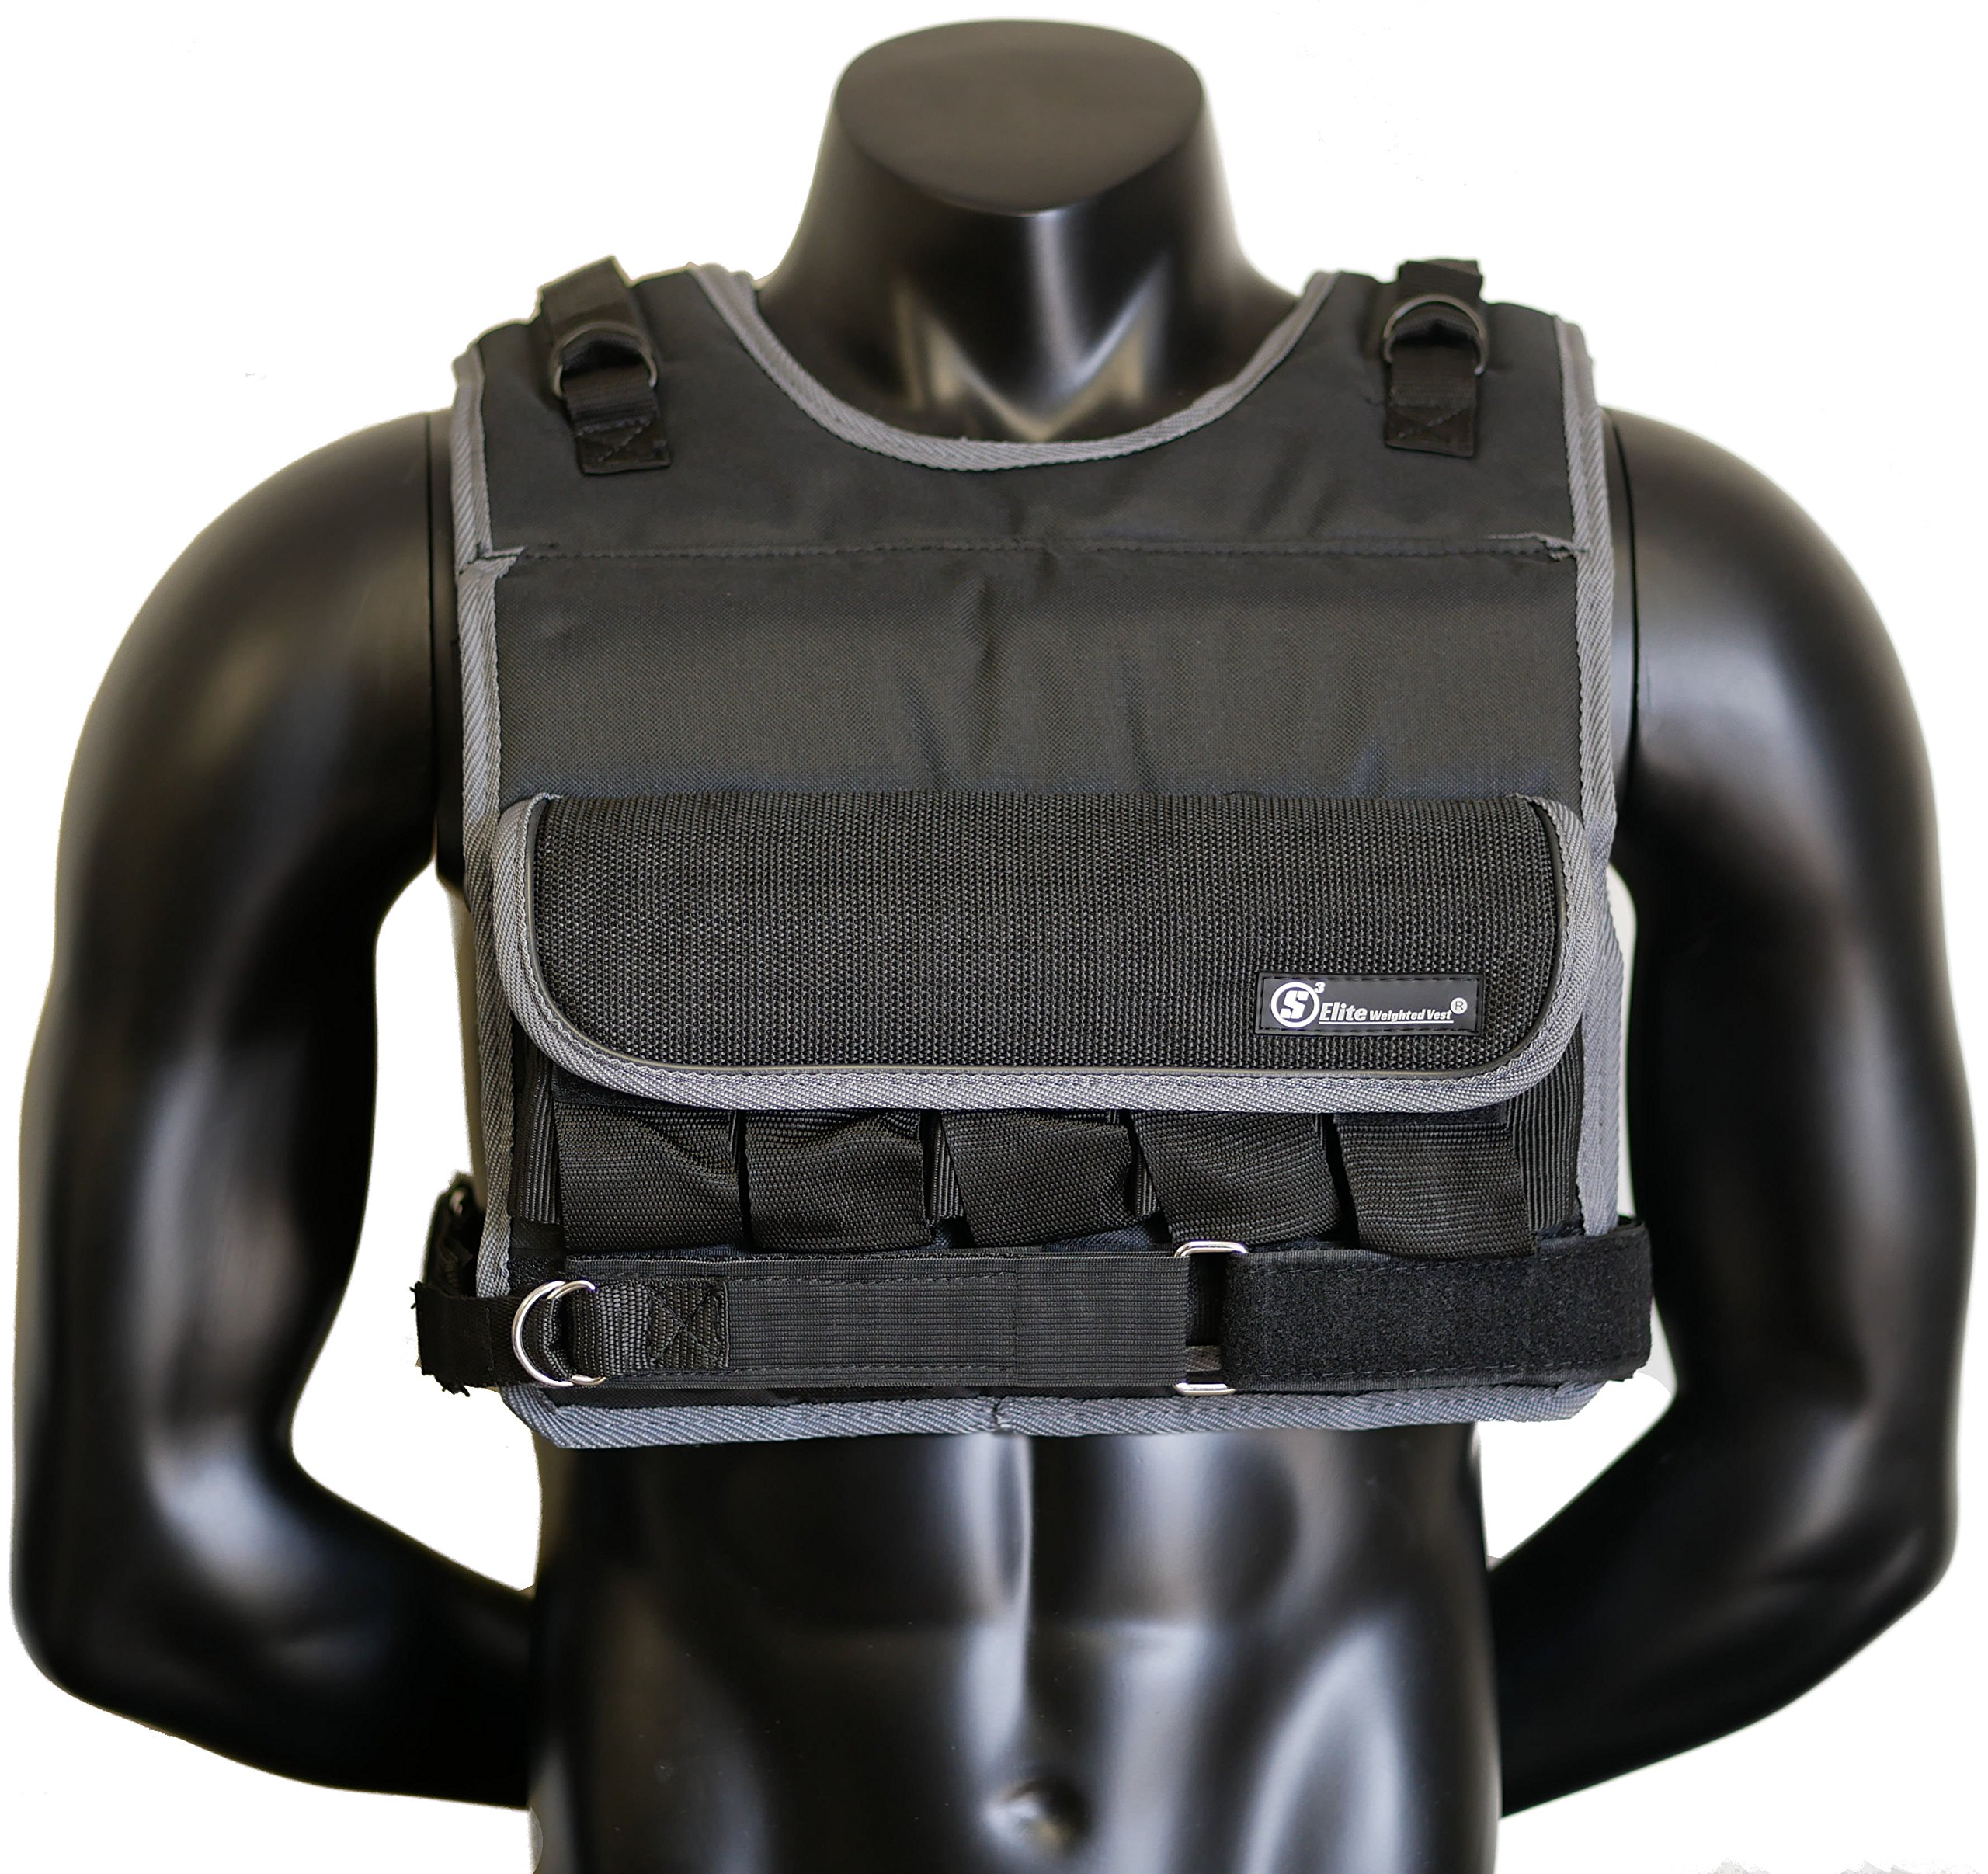 Strength sport systems Weight Vest (Short) - Premium Quality - Best for Cross fit Training - Running - Jogging - Fully Adjustable - max Weight 90lbs (S Elite Weight Vest) (Elite-Black, 80lbs) by Strength sport systems